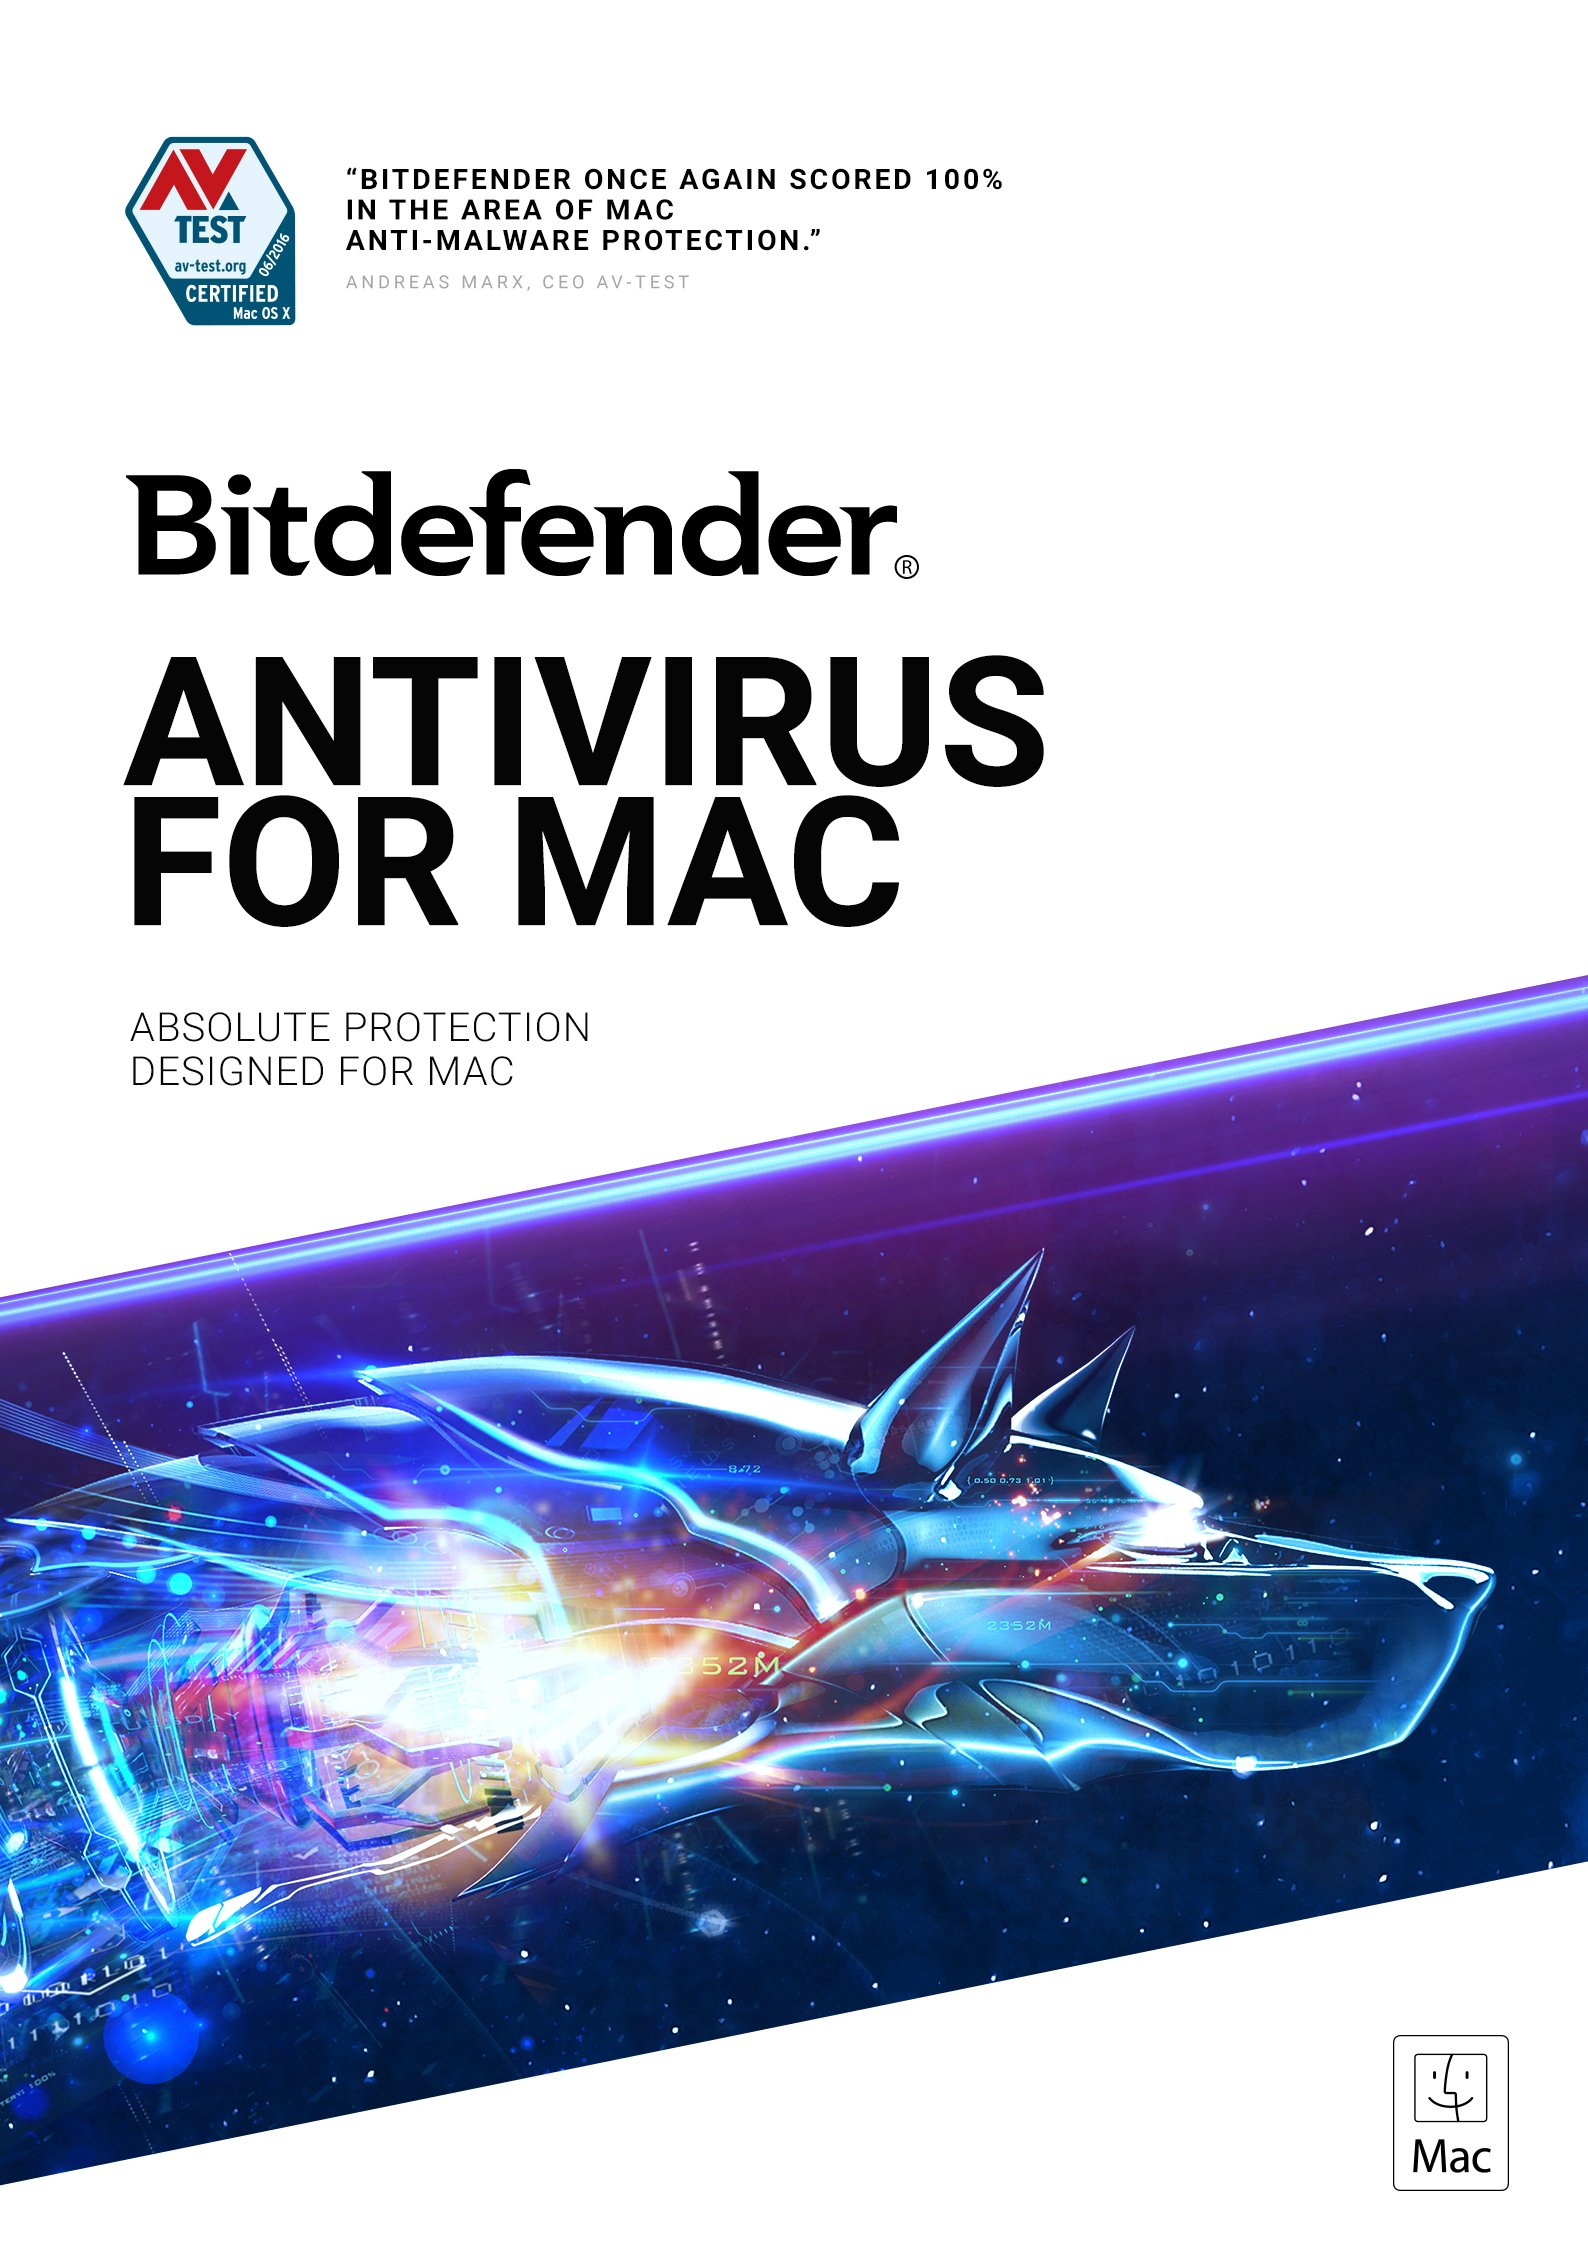 Bitdefender Antivirus for Mac - 1 Device | 1 year Subscription | Mac Activation Code by email by Bitdefender